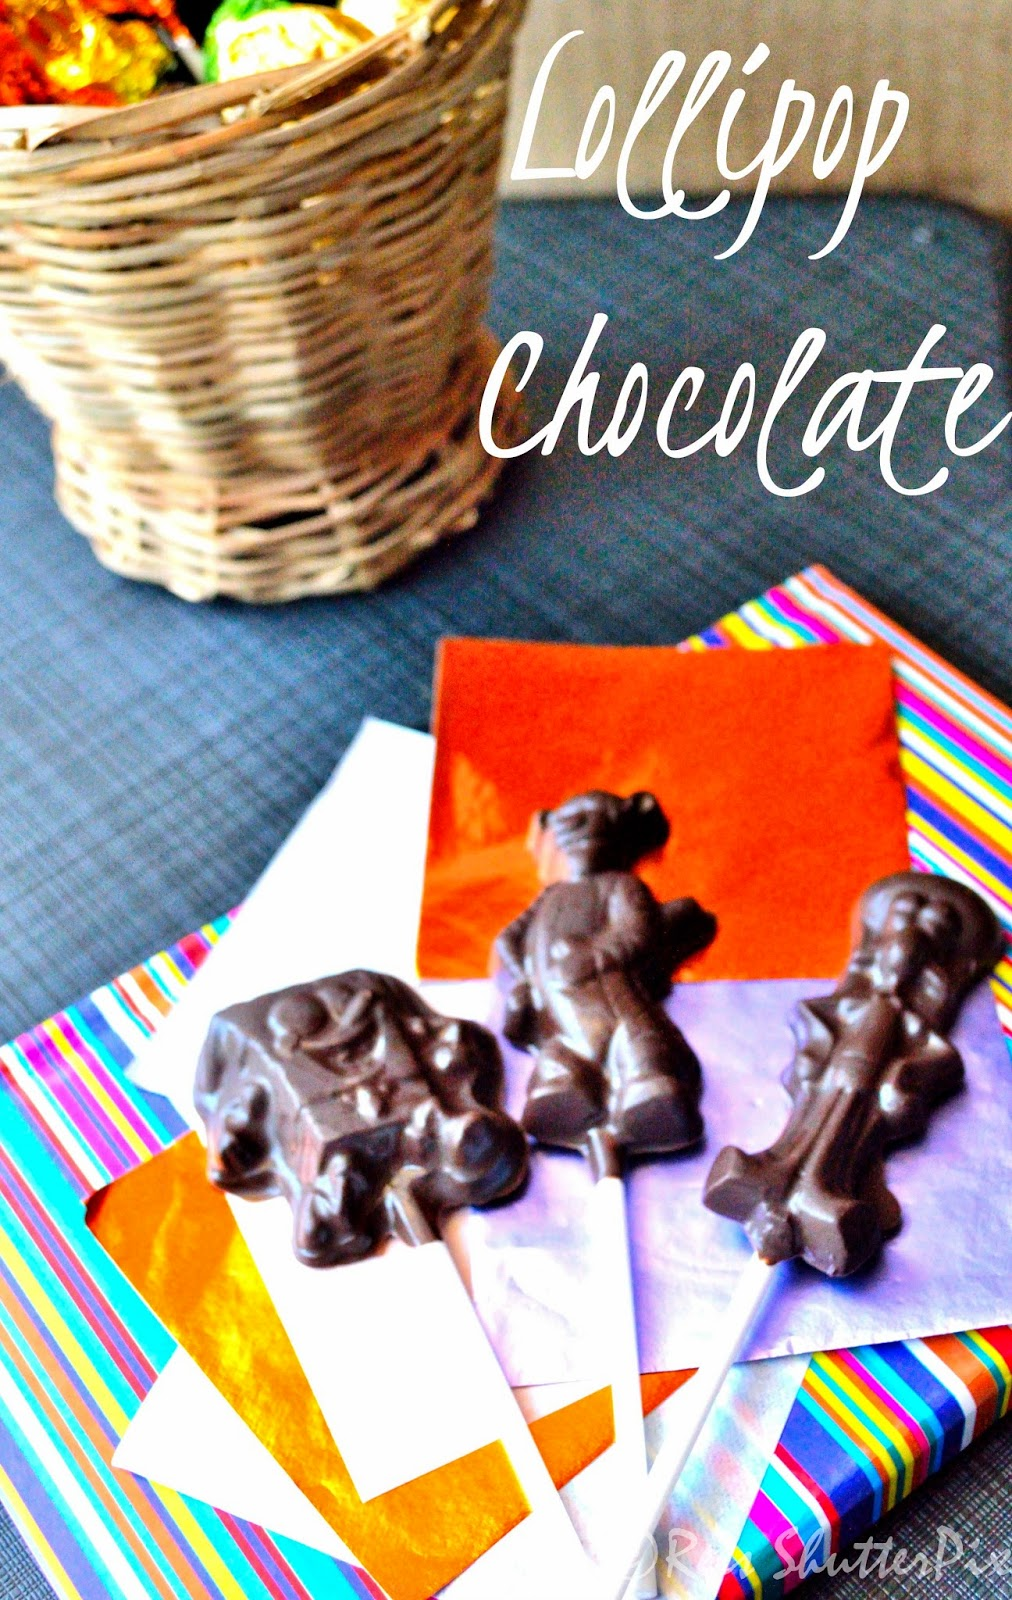 how to make lollipop chocolates at home